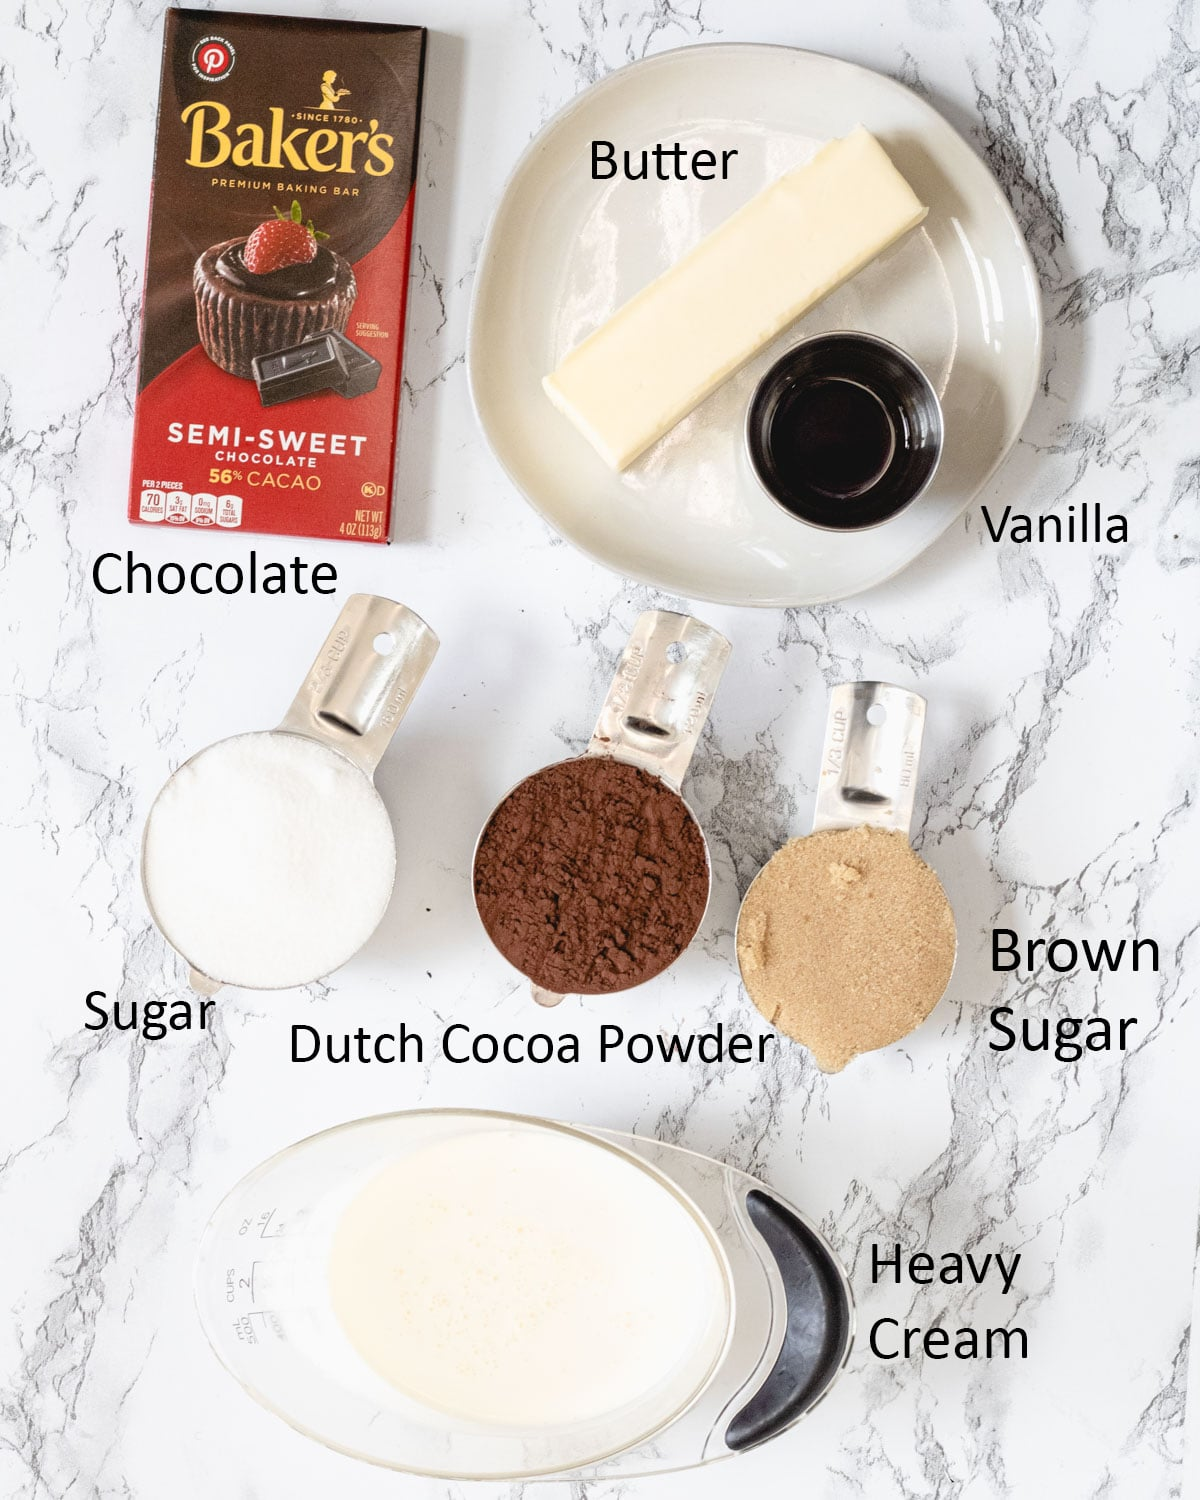 Hot fudge ingredients: Semi-sweet chocolate, butter, vanilla extraqct, sugar, Dutch cocoa powder, brown sugar, and heavy cream.